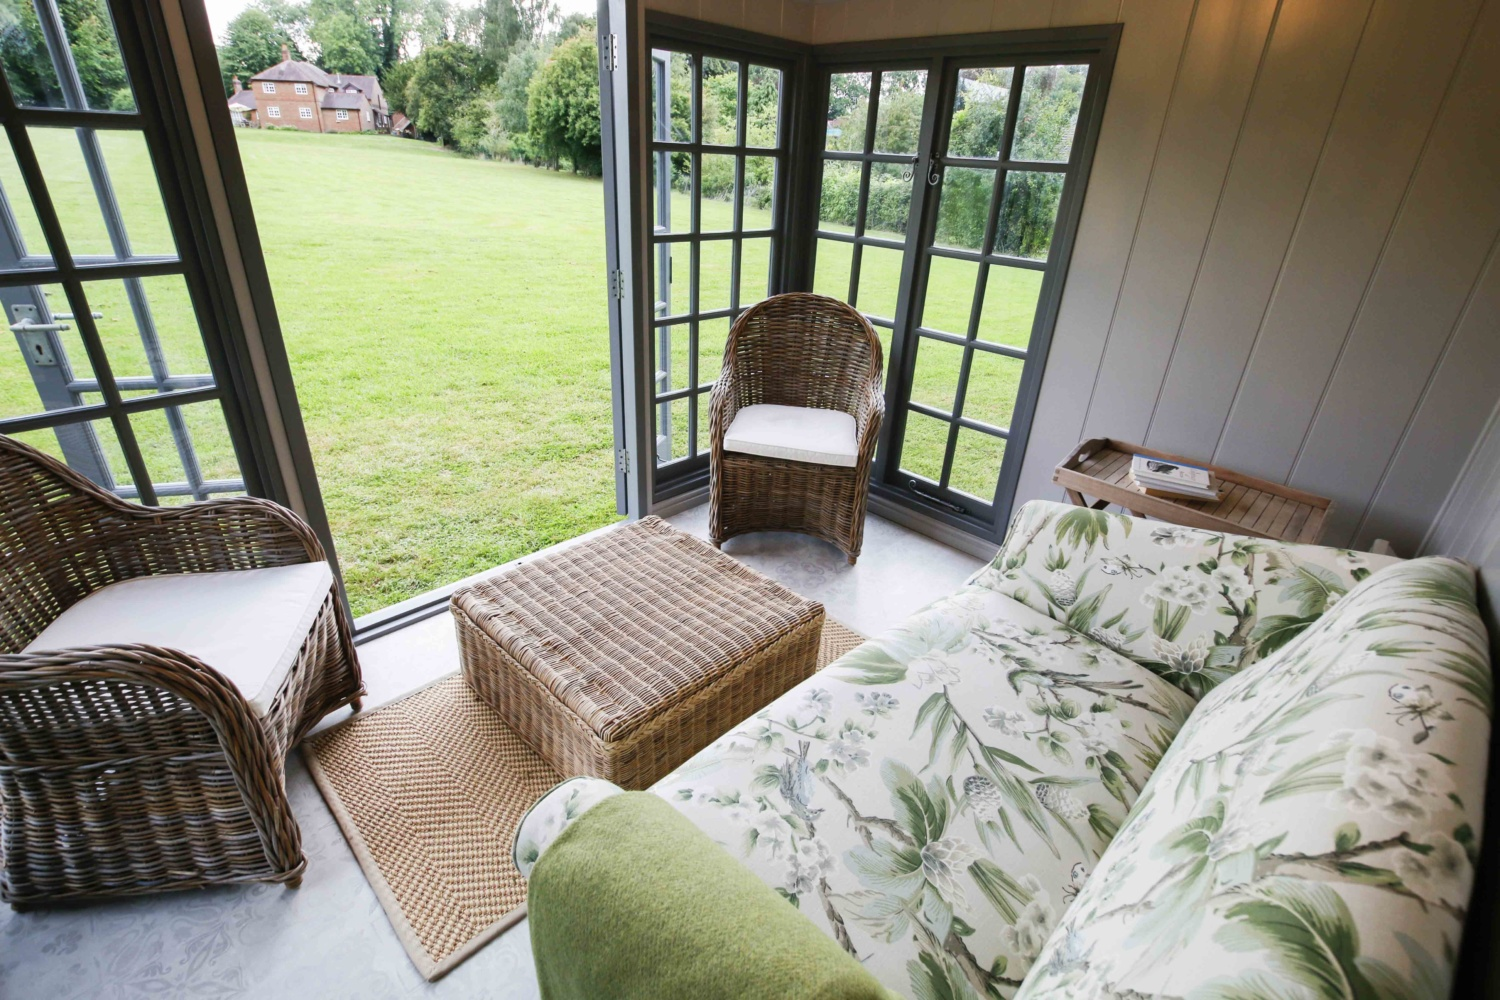 Malvern Garden Buildings visits Jan who owns a Kew Victoria garden room. Owner's Story for Garden Escape